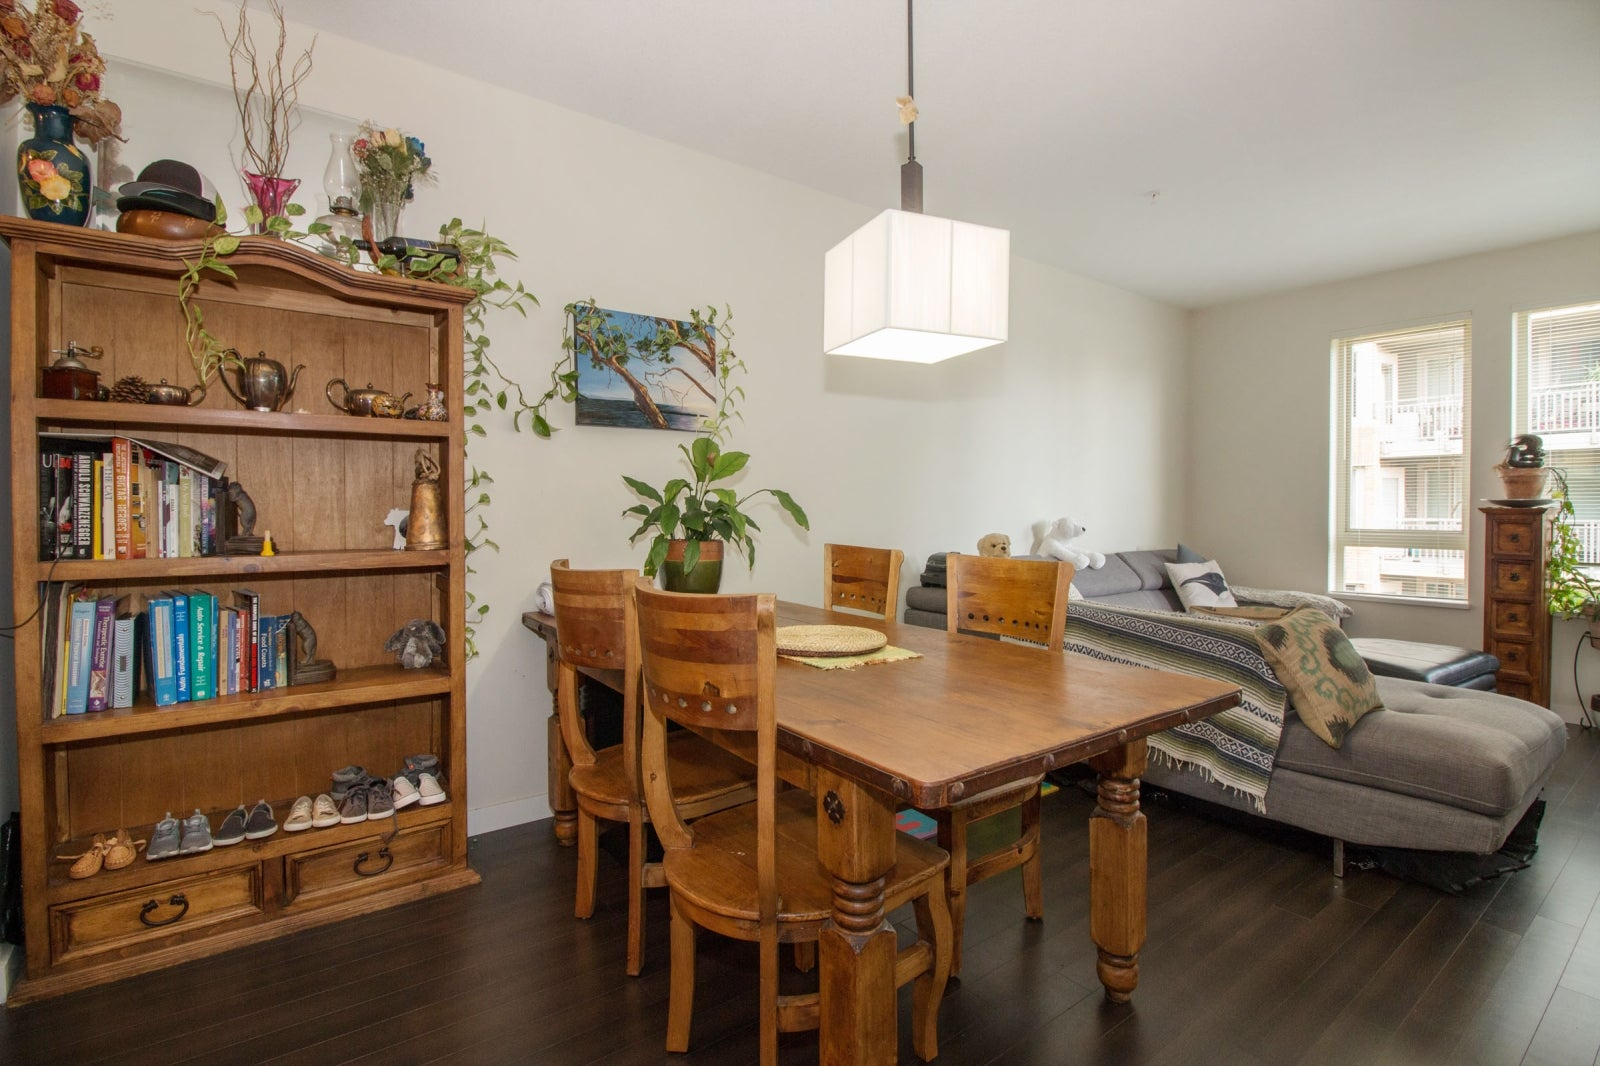 306 139 W 22ND STREET - Central Lonsdale Apartment/Condo for sale, 2 Bedrooms (R2201915) #13